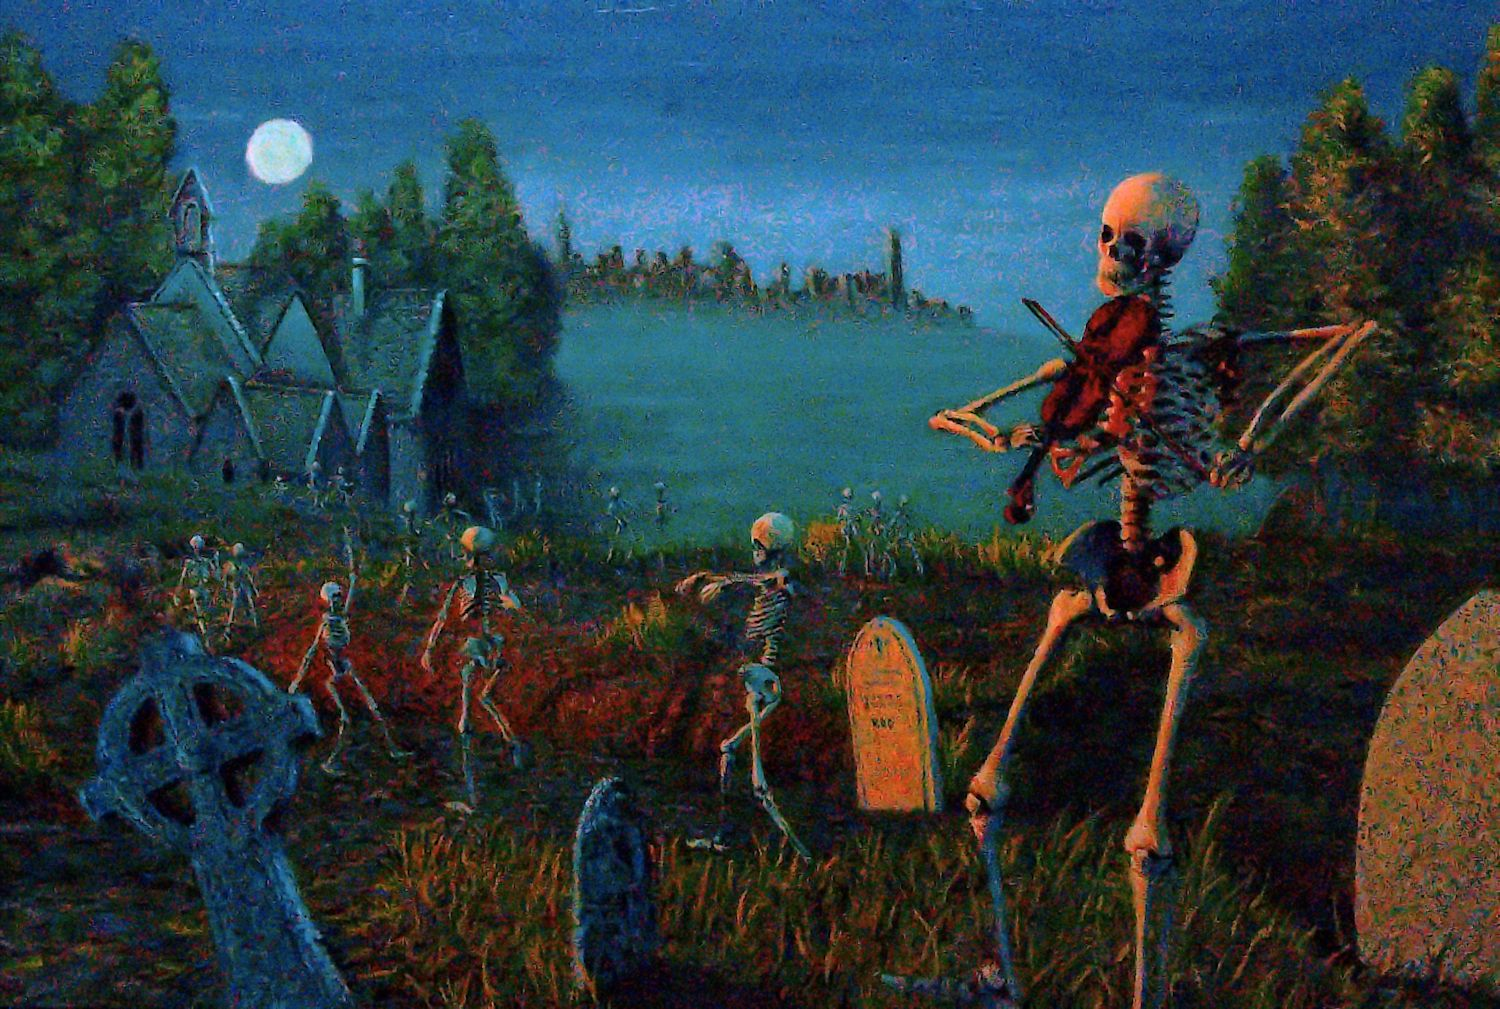 Danse Macabre (after Saint-Seans)